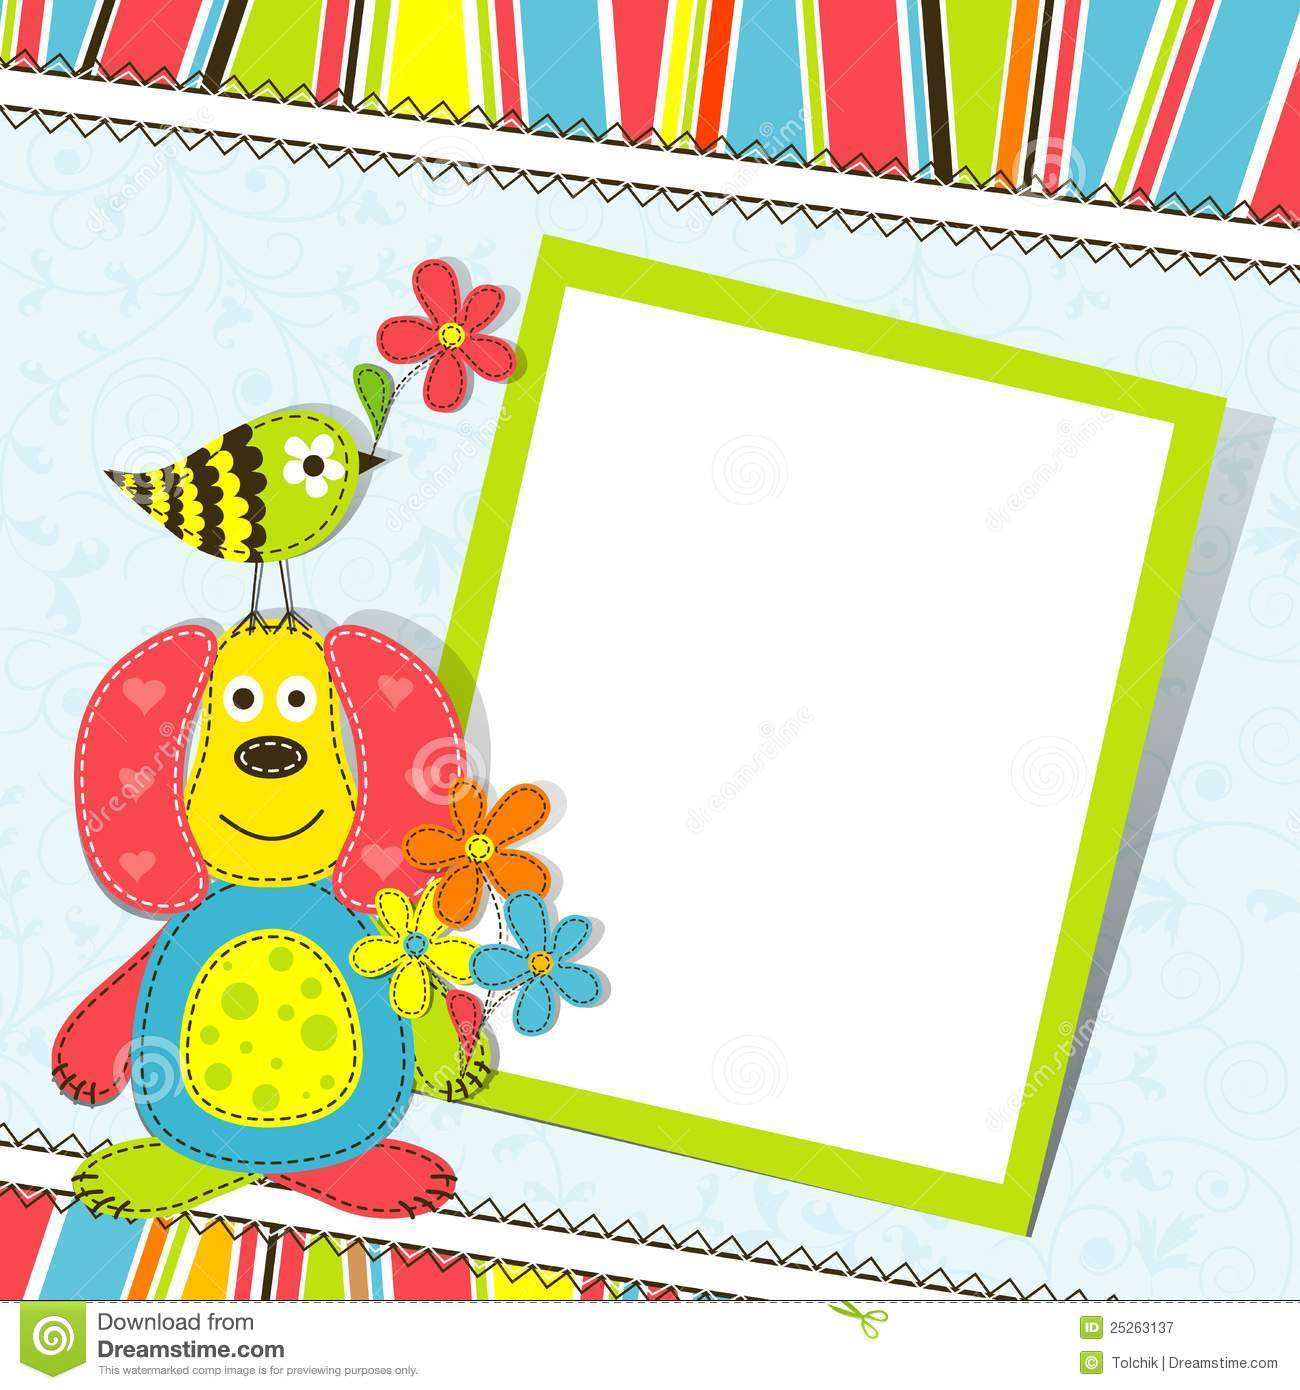 Best ideas about Birthday Card Template . Save or Pin Greeting Card Template Now.